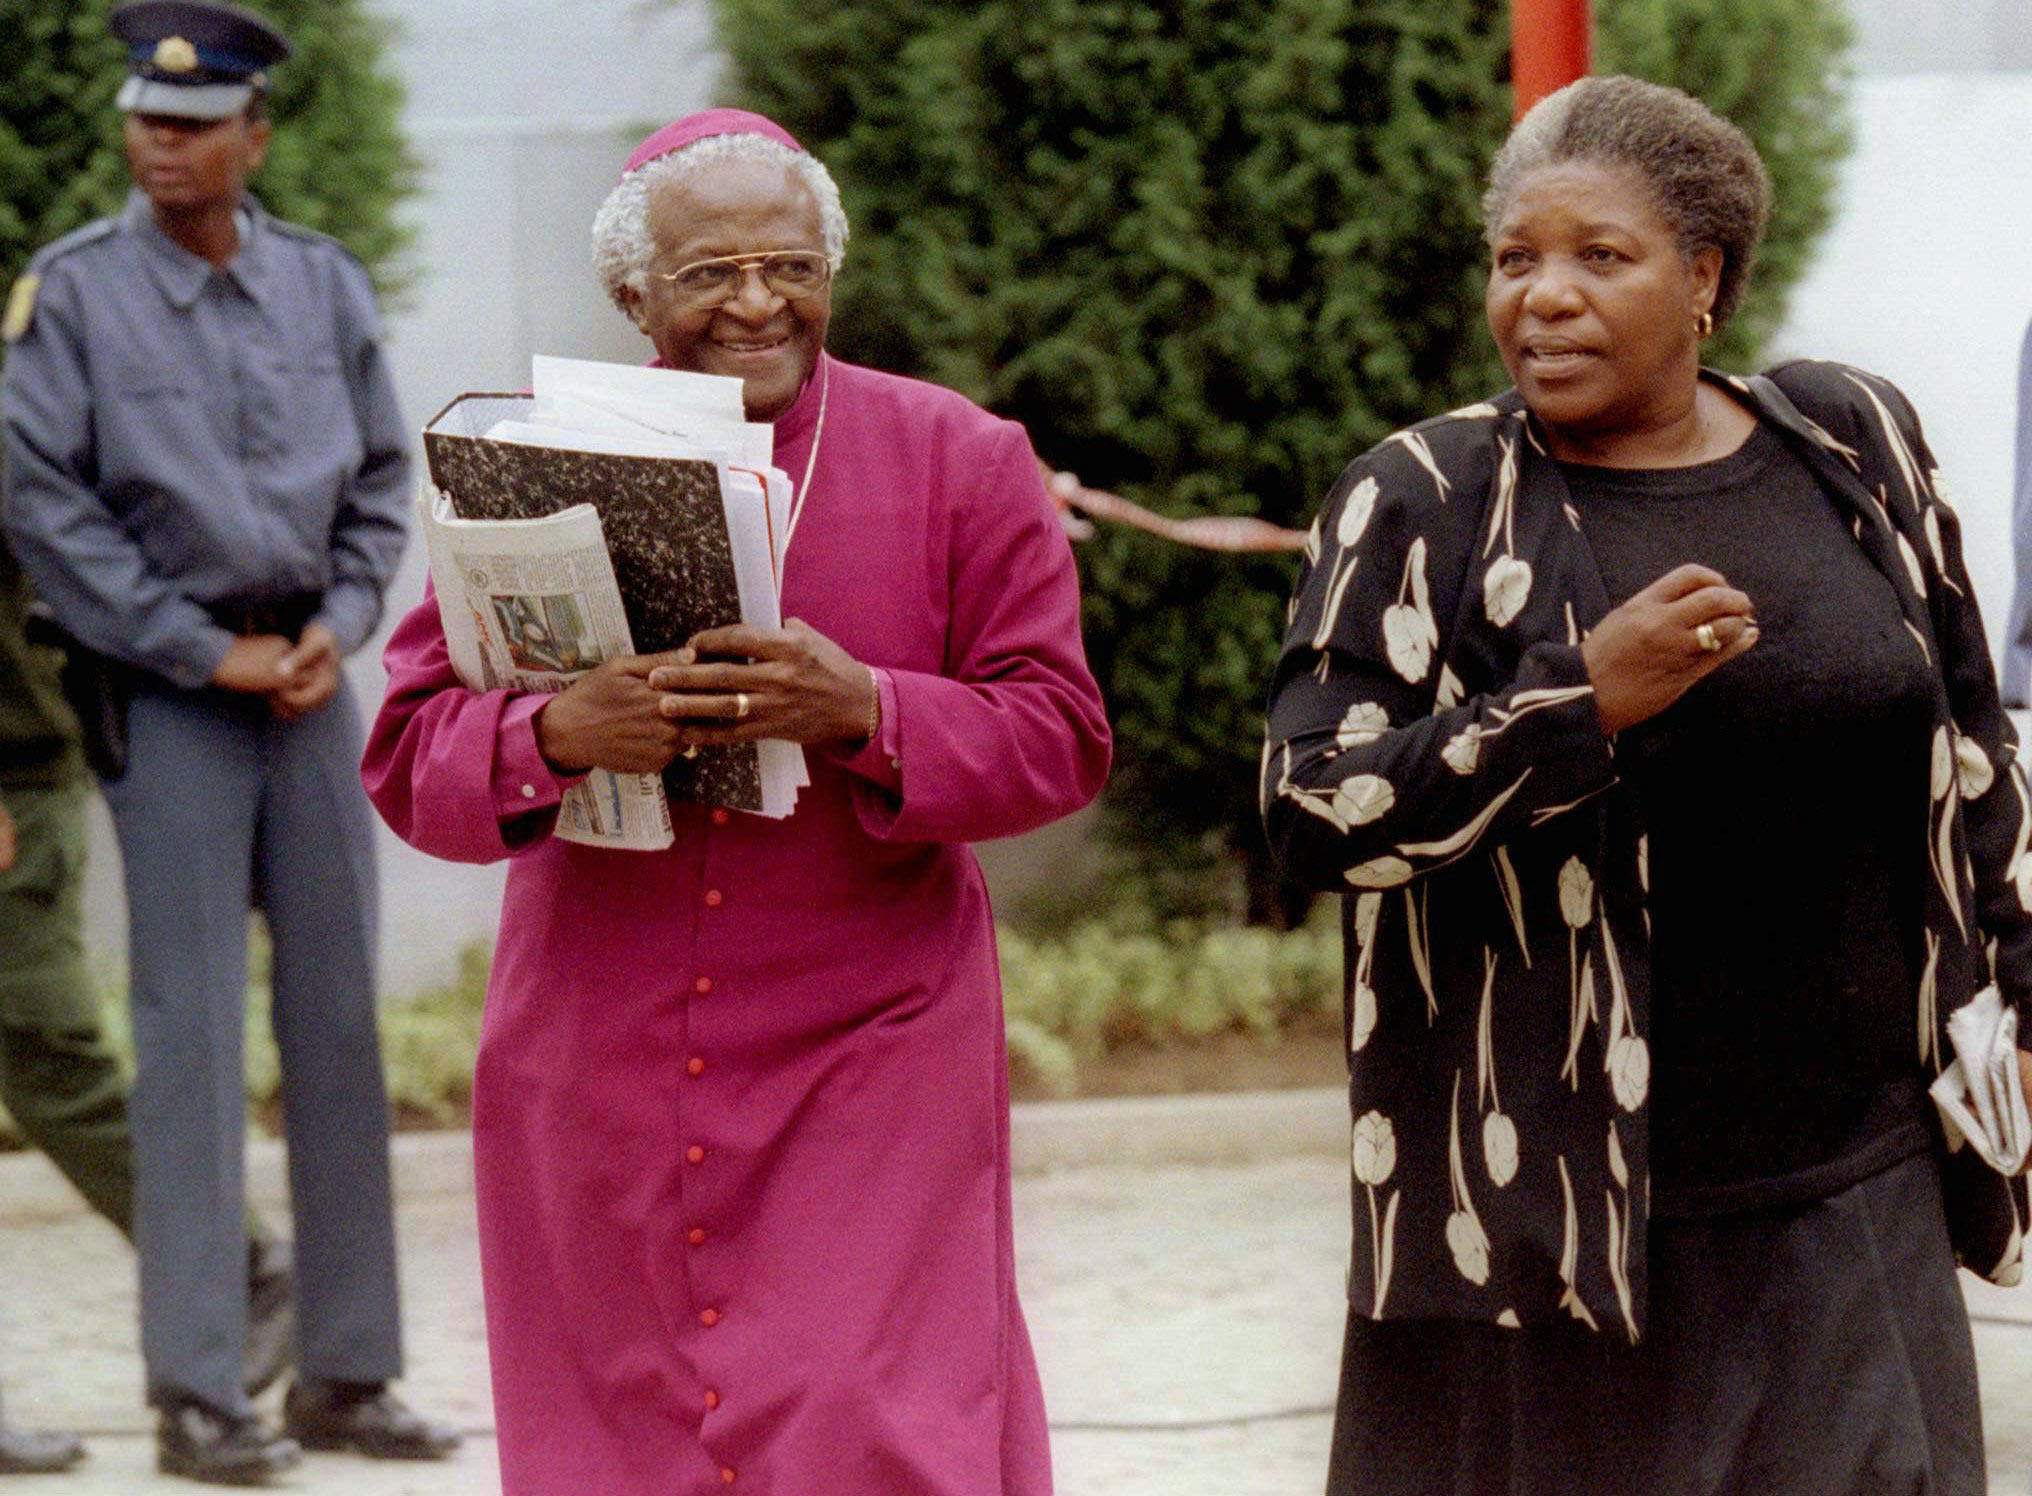 FILE - Archbishop Desmond Tutu and his wife Leah arrive at the special public hearing of South Africa's Truth and Reconciliation Commission in Johannesburg, on Thursday, November 27, 1997. Photo: AP